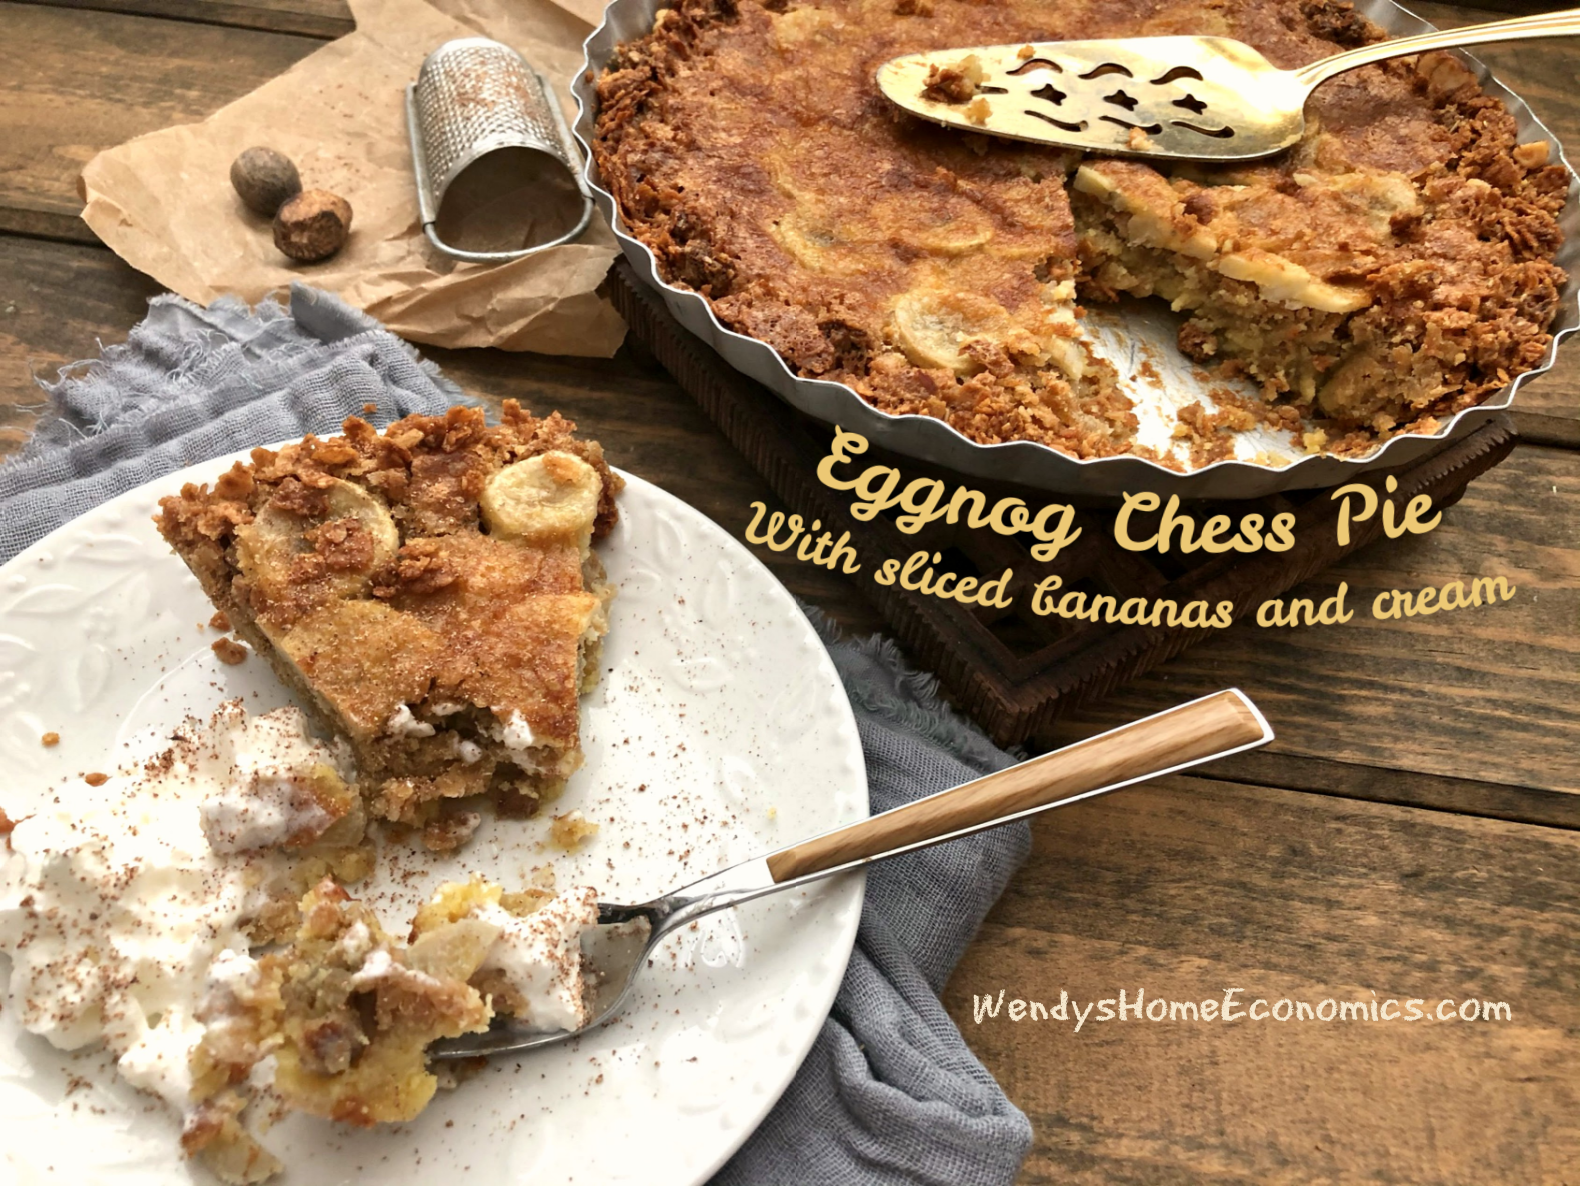 Egg Nog Chess Pie with bananas and cream